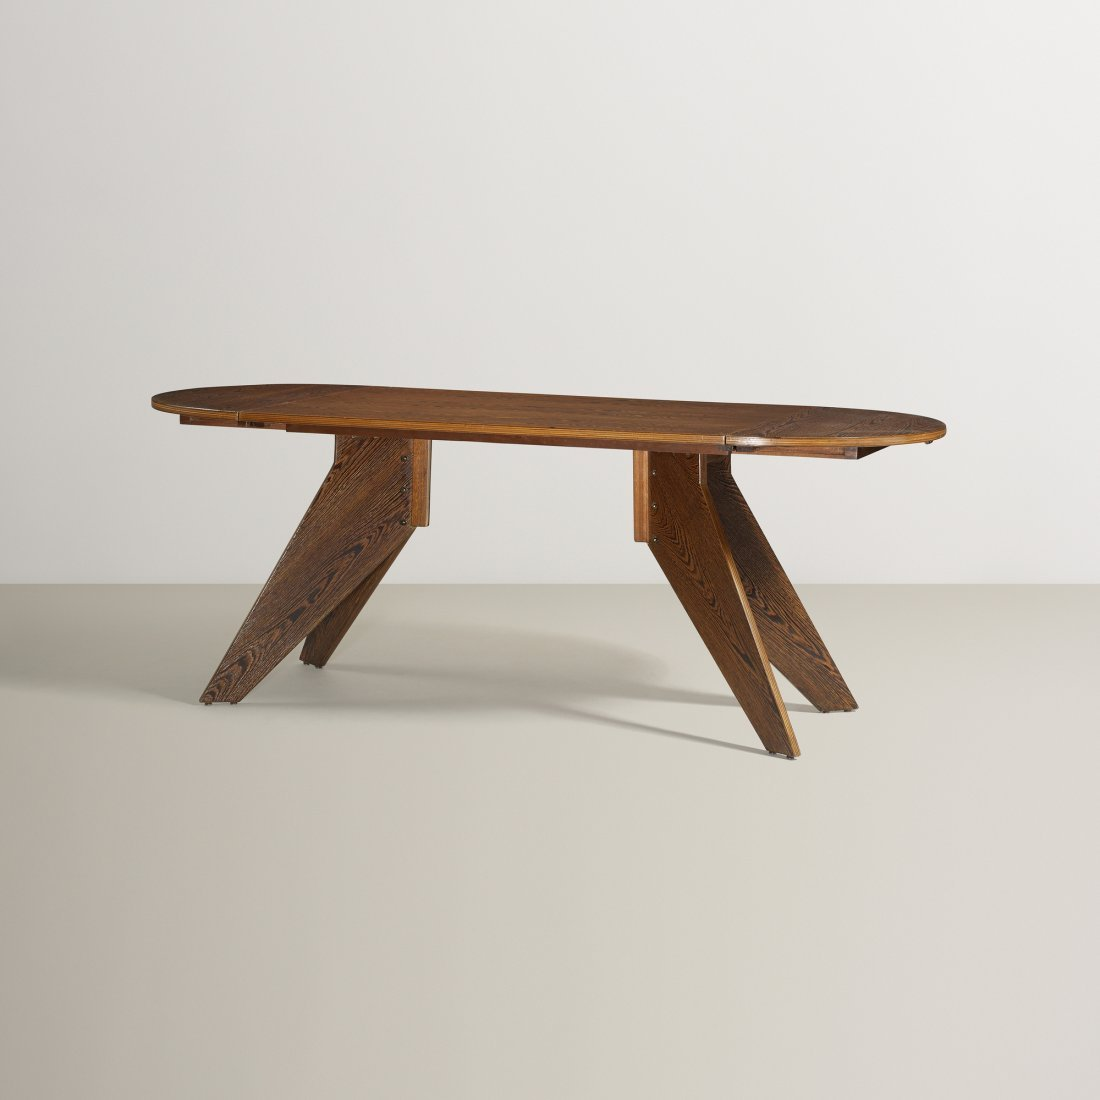 André Sornay table